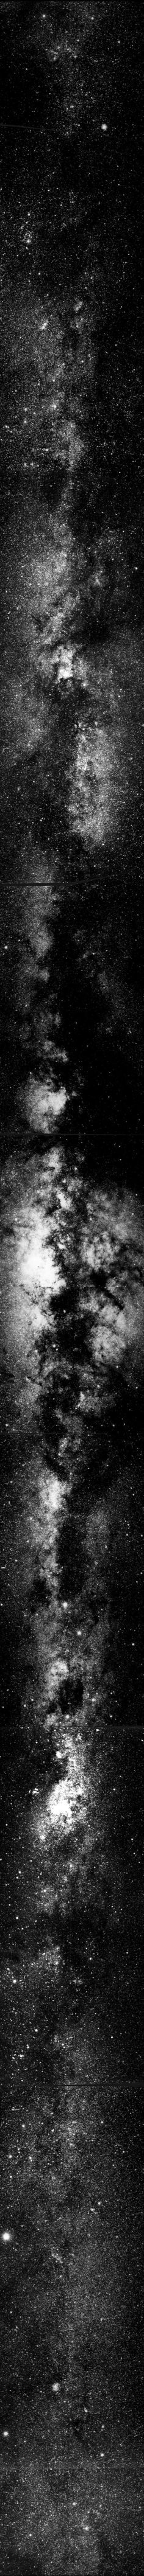 The Milky Way Galaxy - every dot is a Sun. via the Two Micron All Sky Survey using, in part, the Very Large Telescope in the Atacama Desert in Chile.